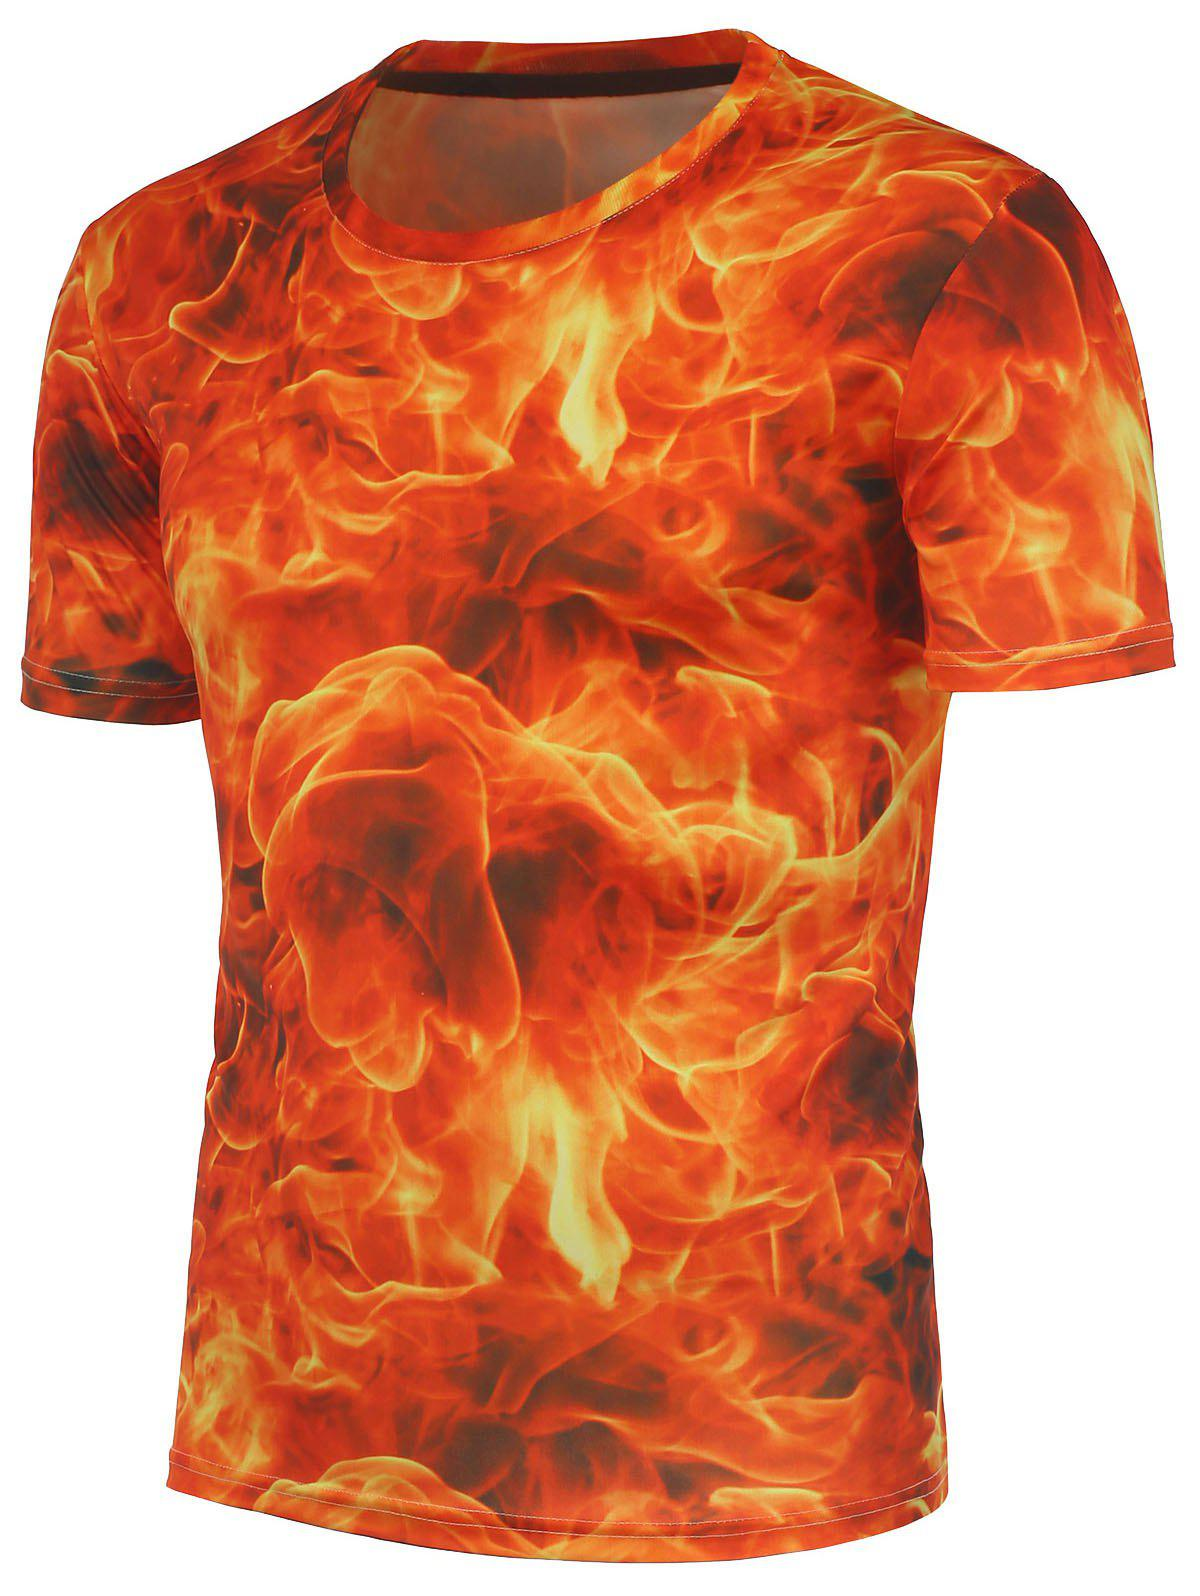 Red 3d fire pattern crew neck tee for On fire brand t shirts